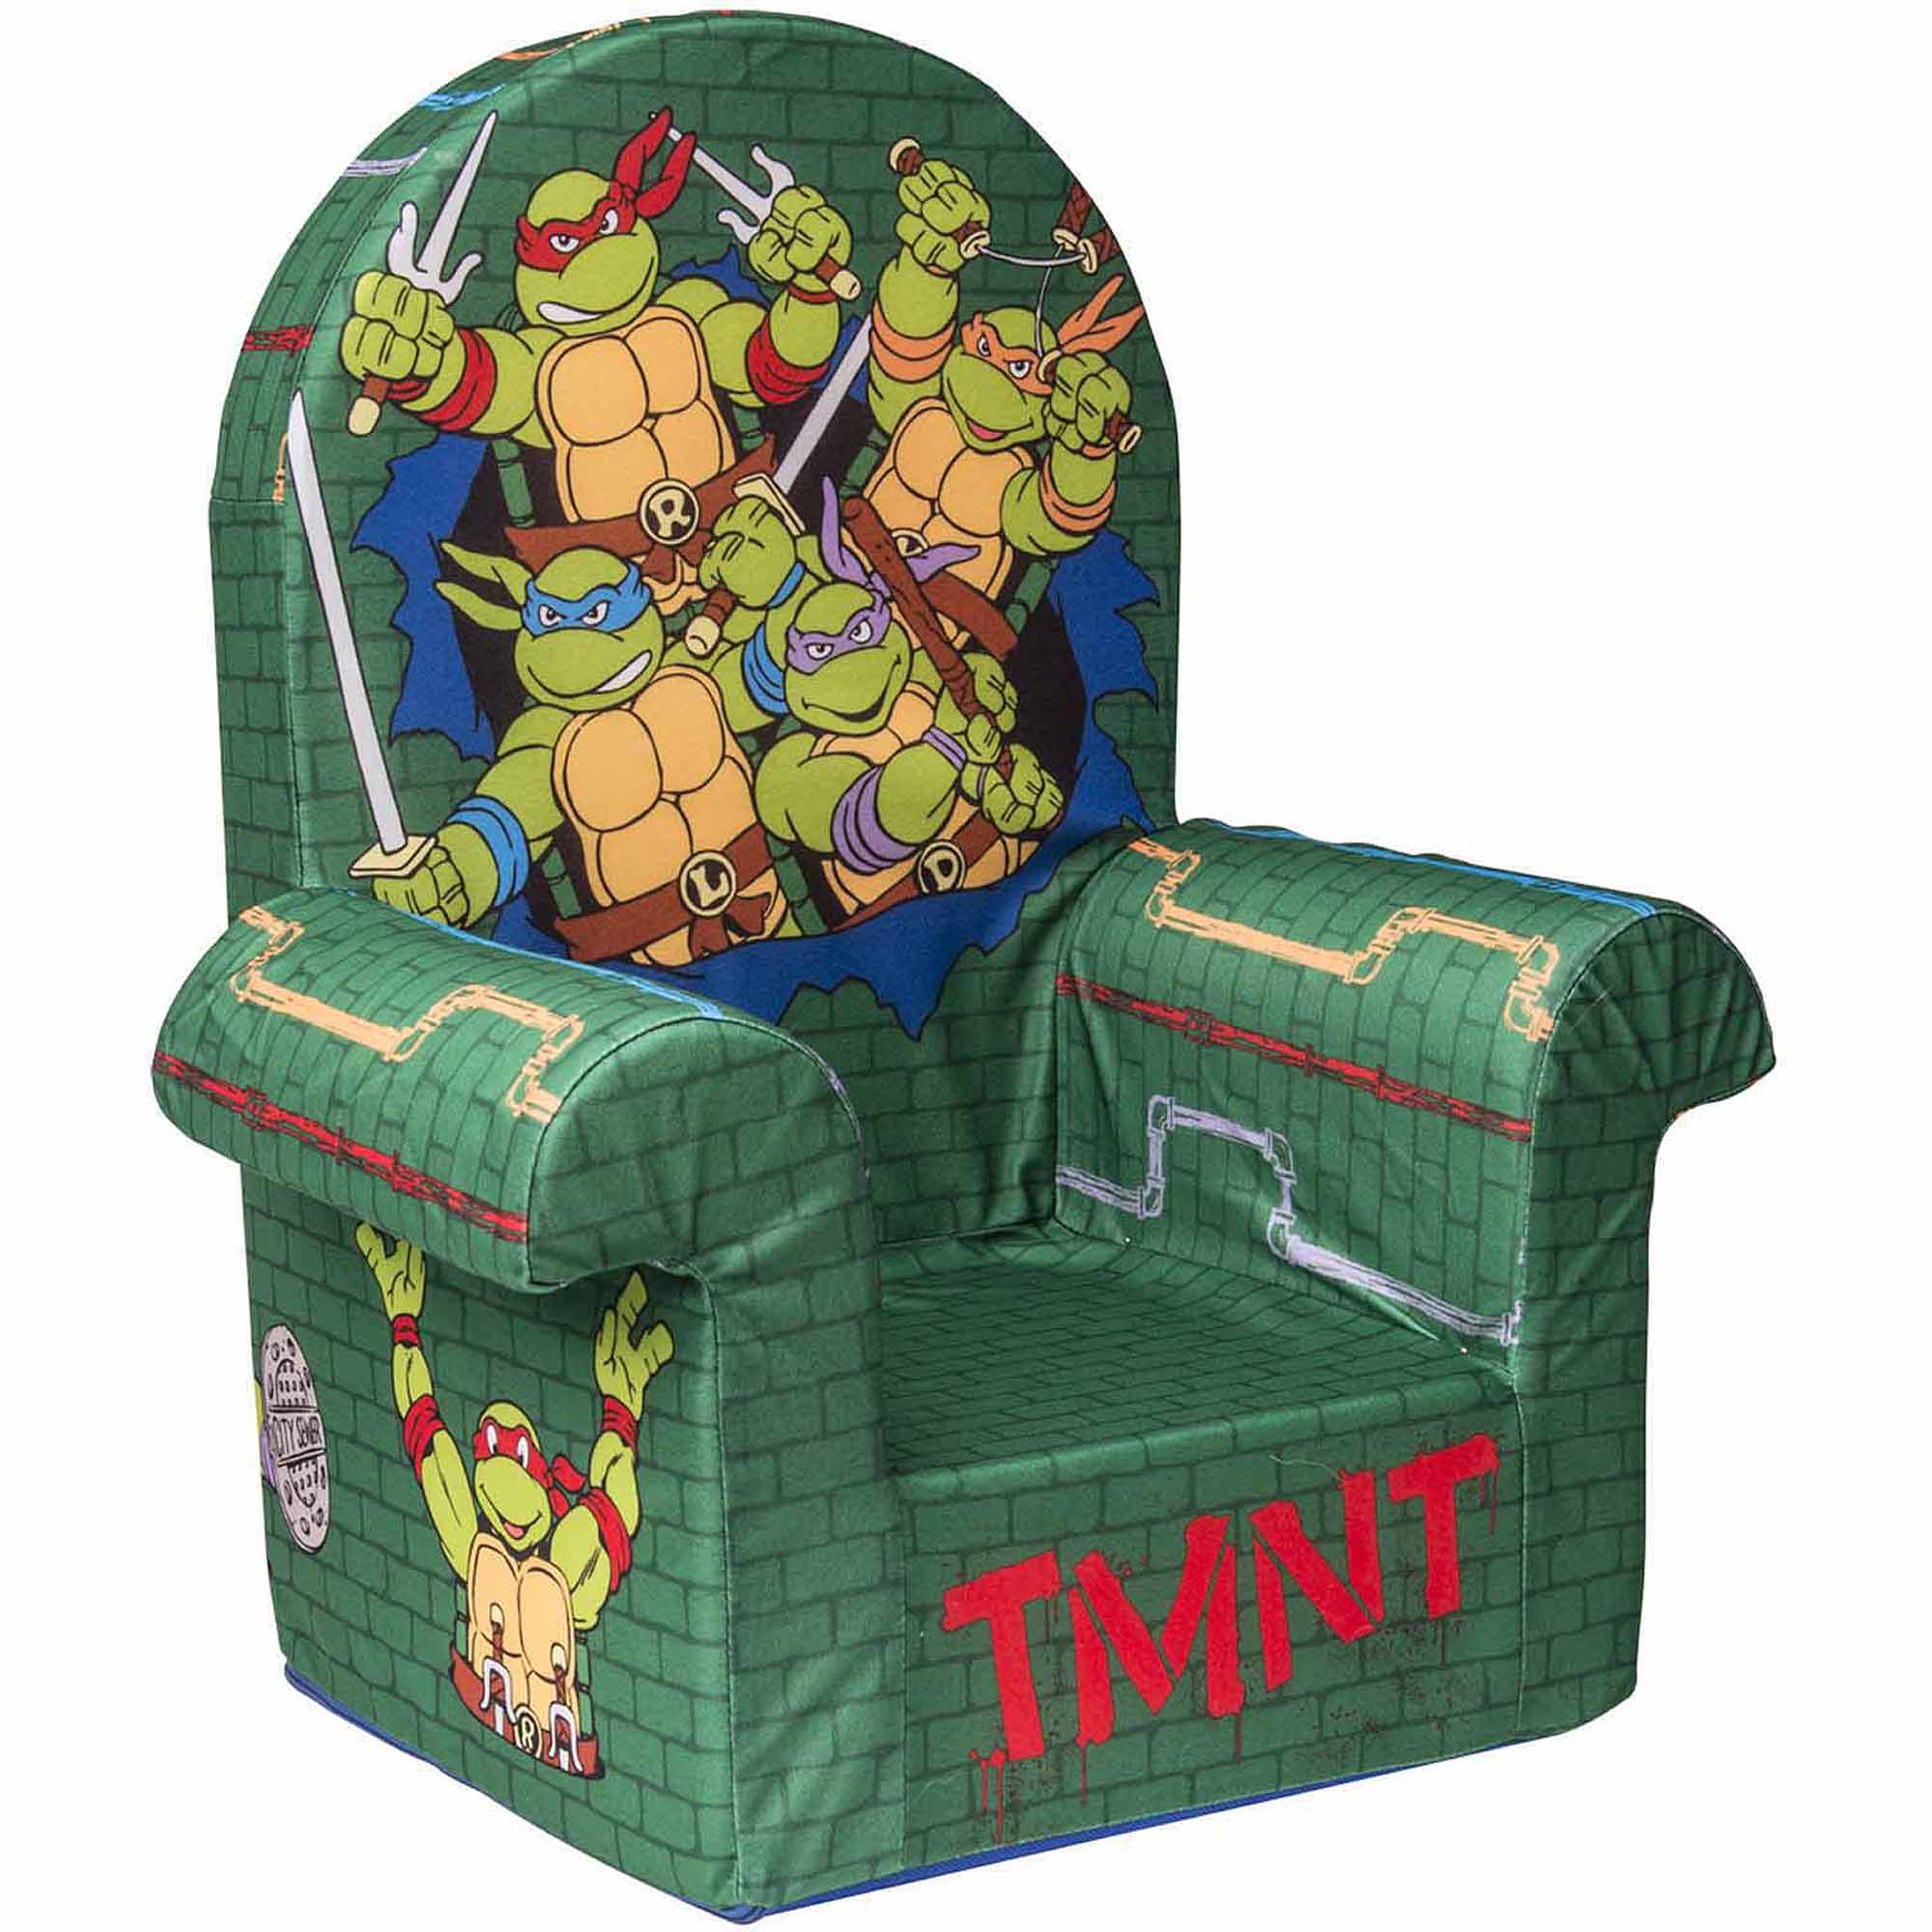 ninja turtles chair kohls cushions marshmallow furniture high back nickelodeon s teenage mutant departments